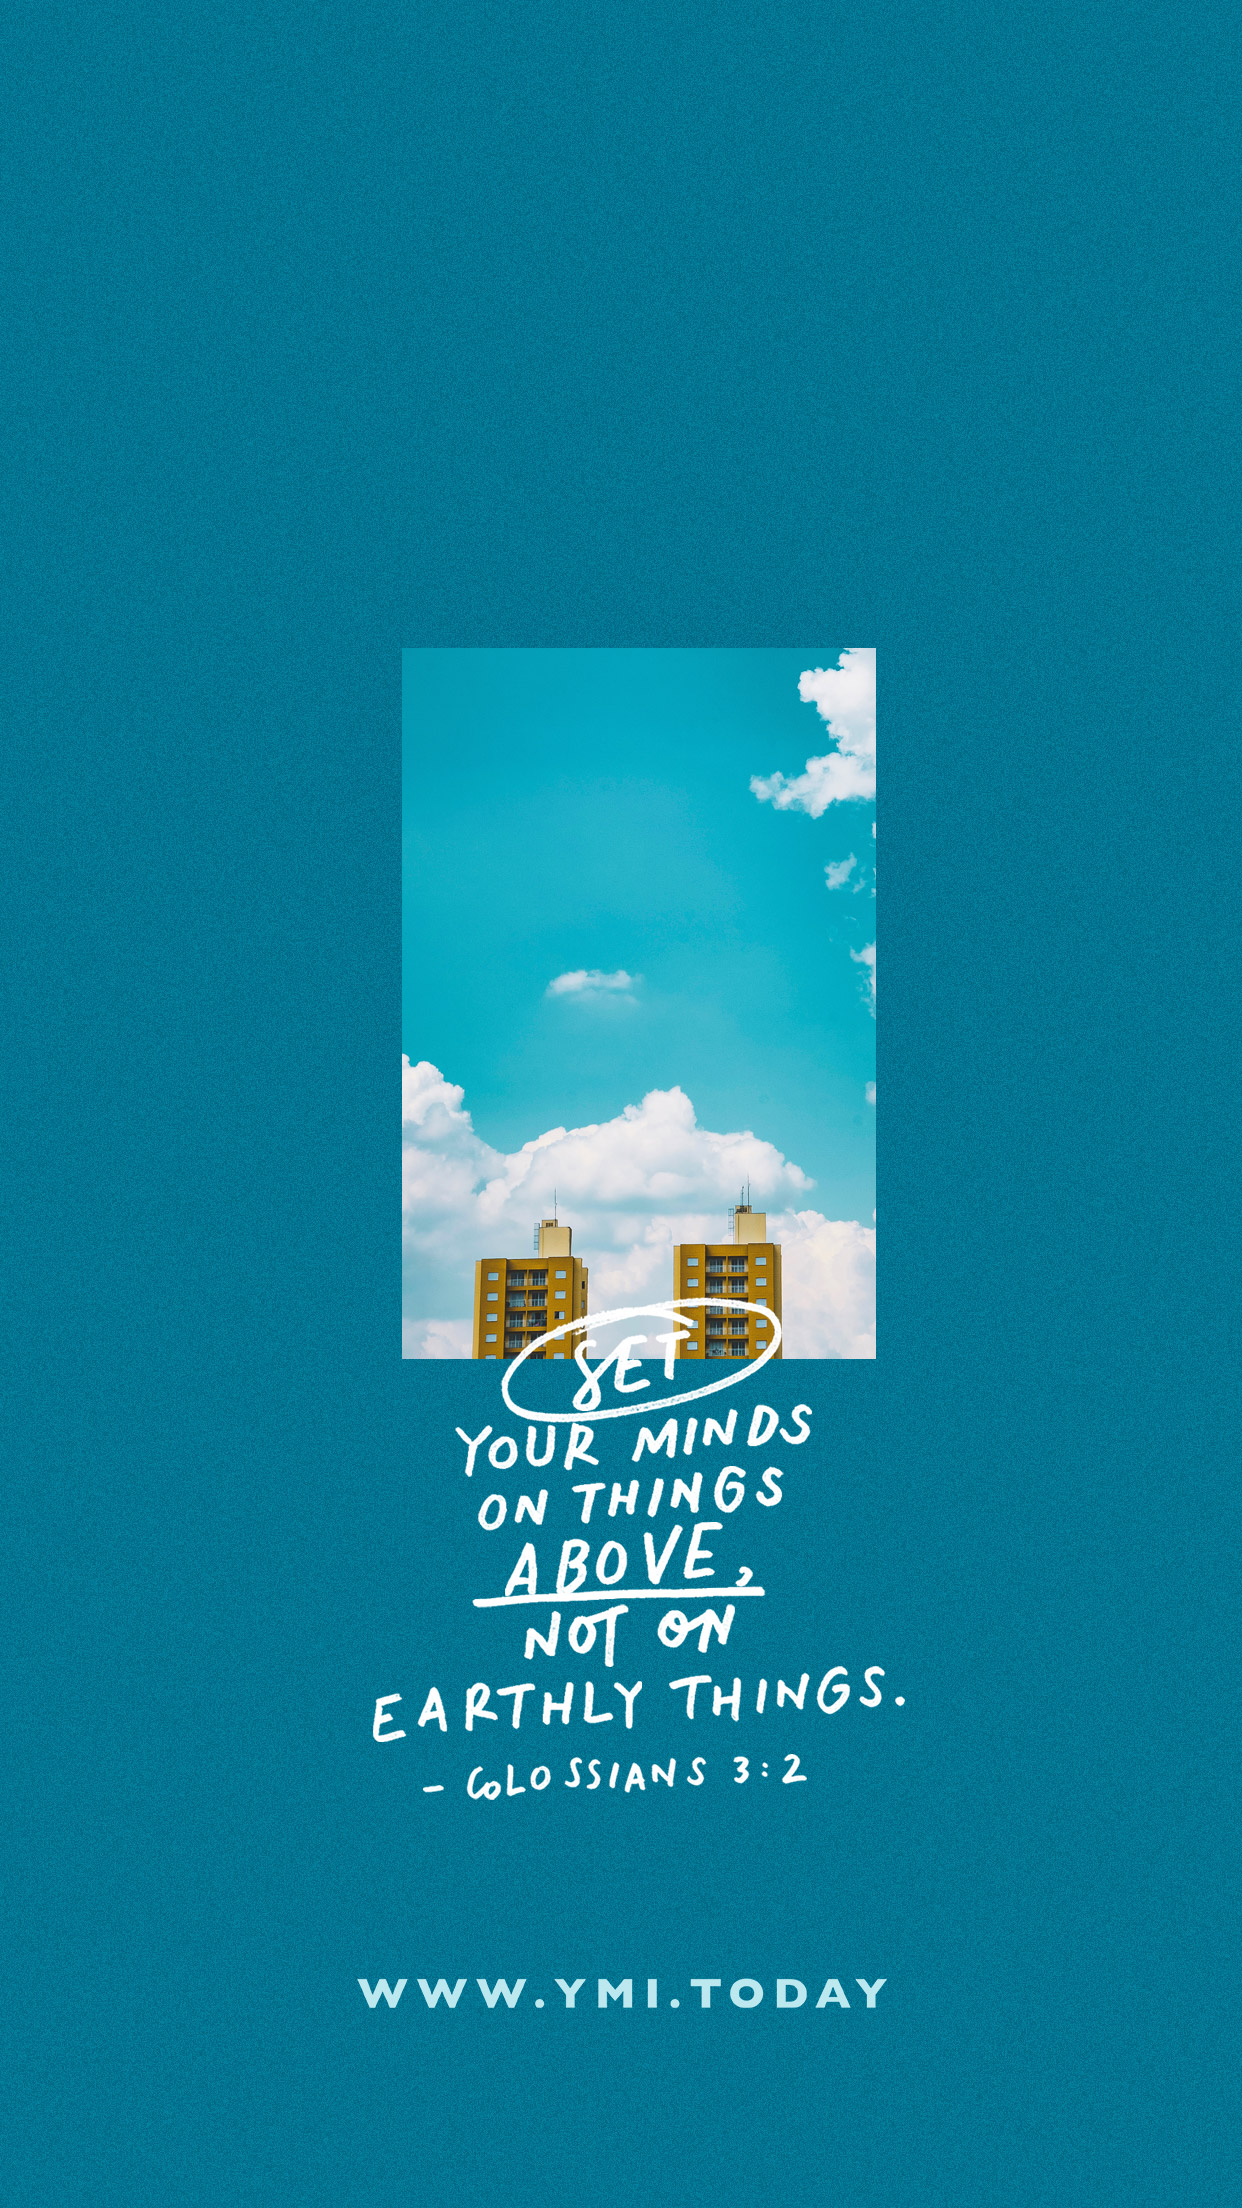 YMI September 2019 Phone Lockscreen - Set your minds on things above not on earthly things. - Colossians 3:2